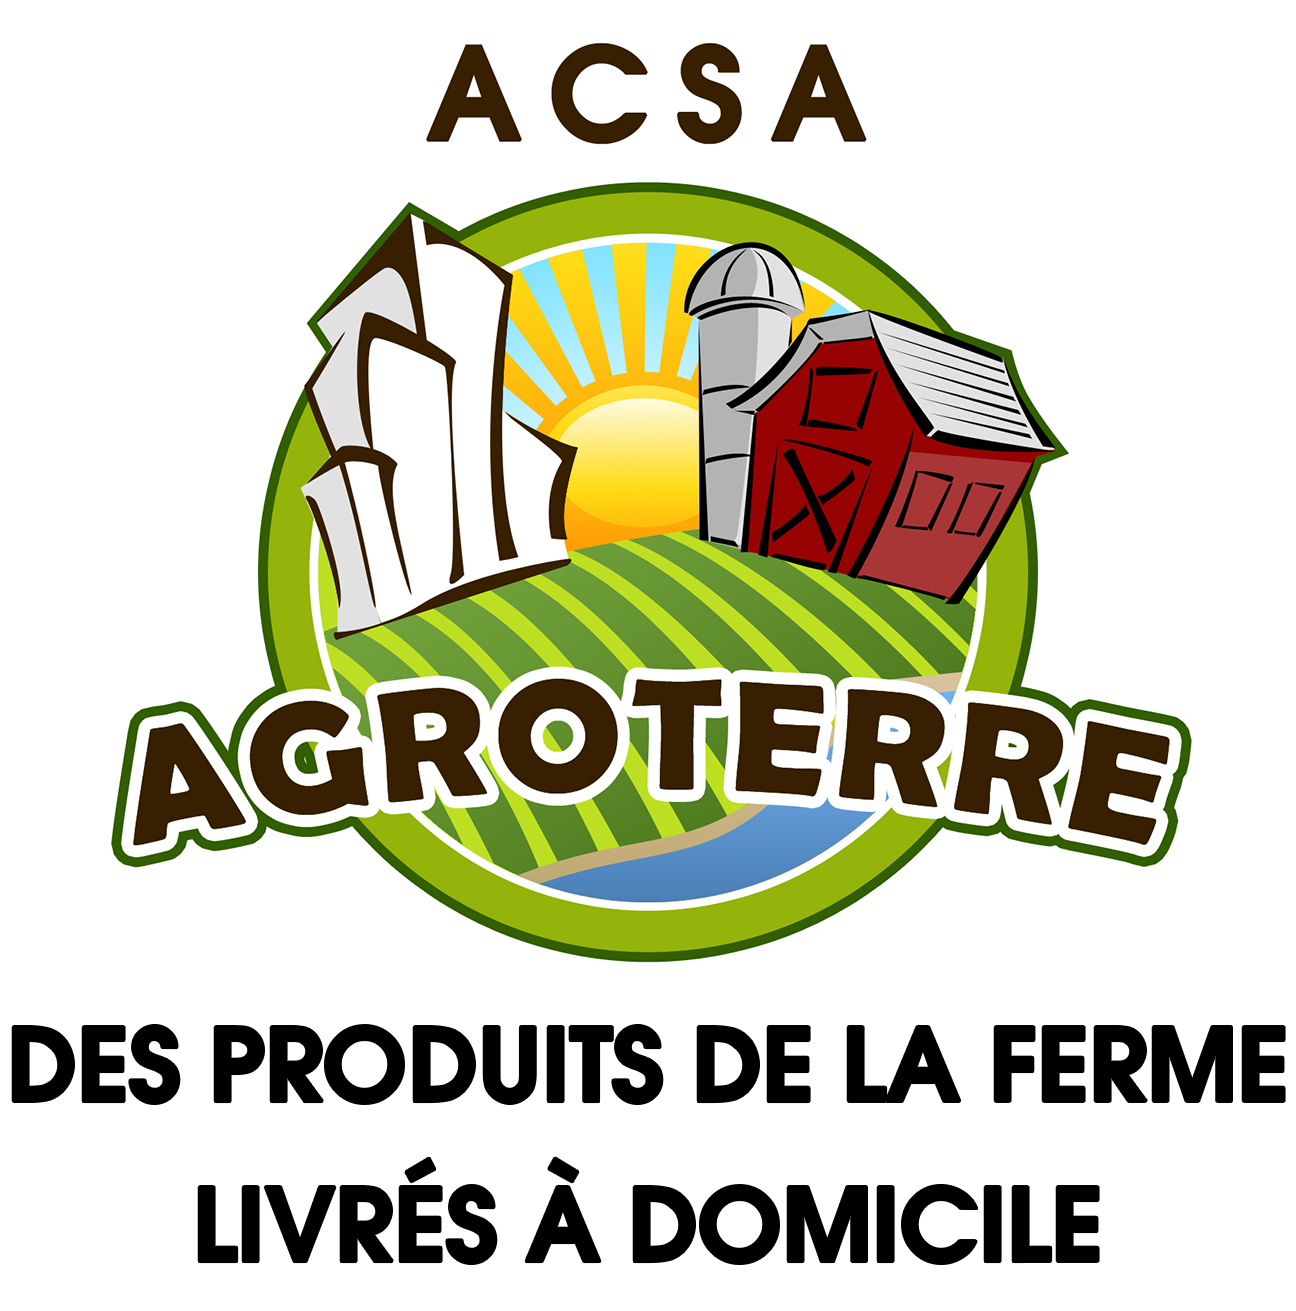 Association Solidaire et Citoyenne Agroterre (ACSA)